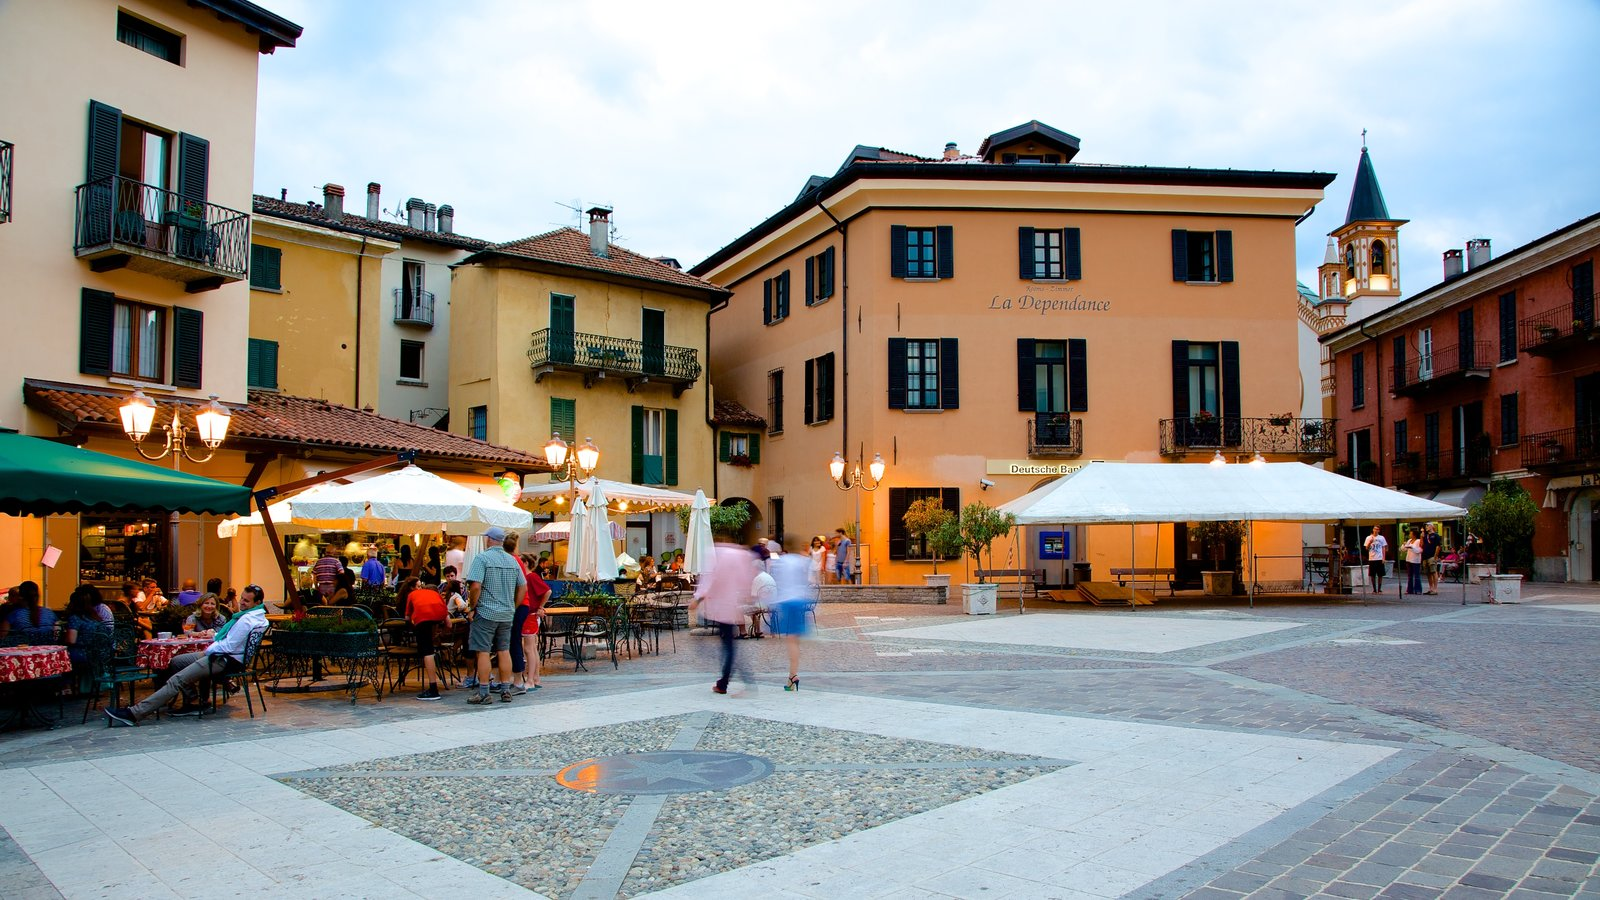 Menaggio showing outdoor eating as well as a small group of people